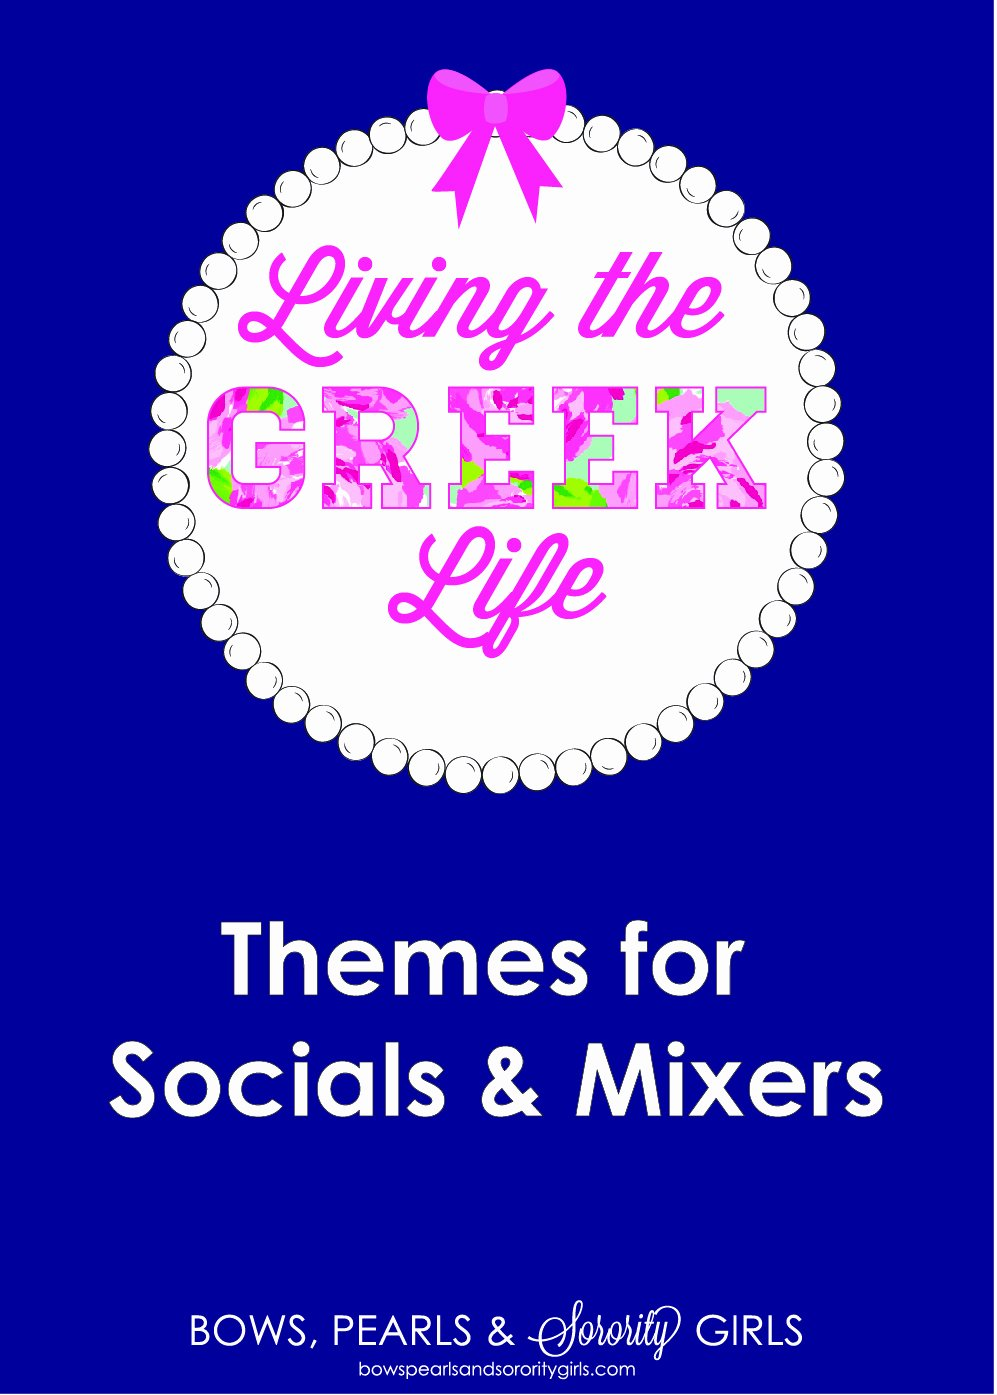 Fraternity formal Awards Ideas Beautiful Bows Pearls & sorority Girls Living the Greek Life